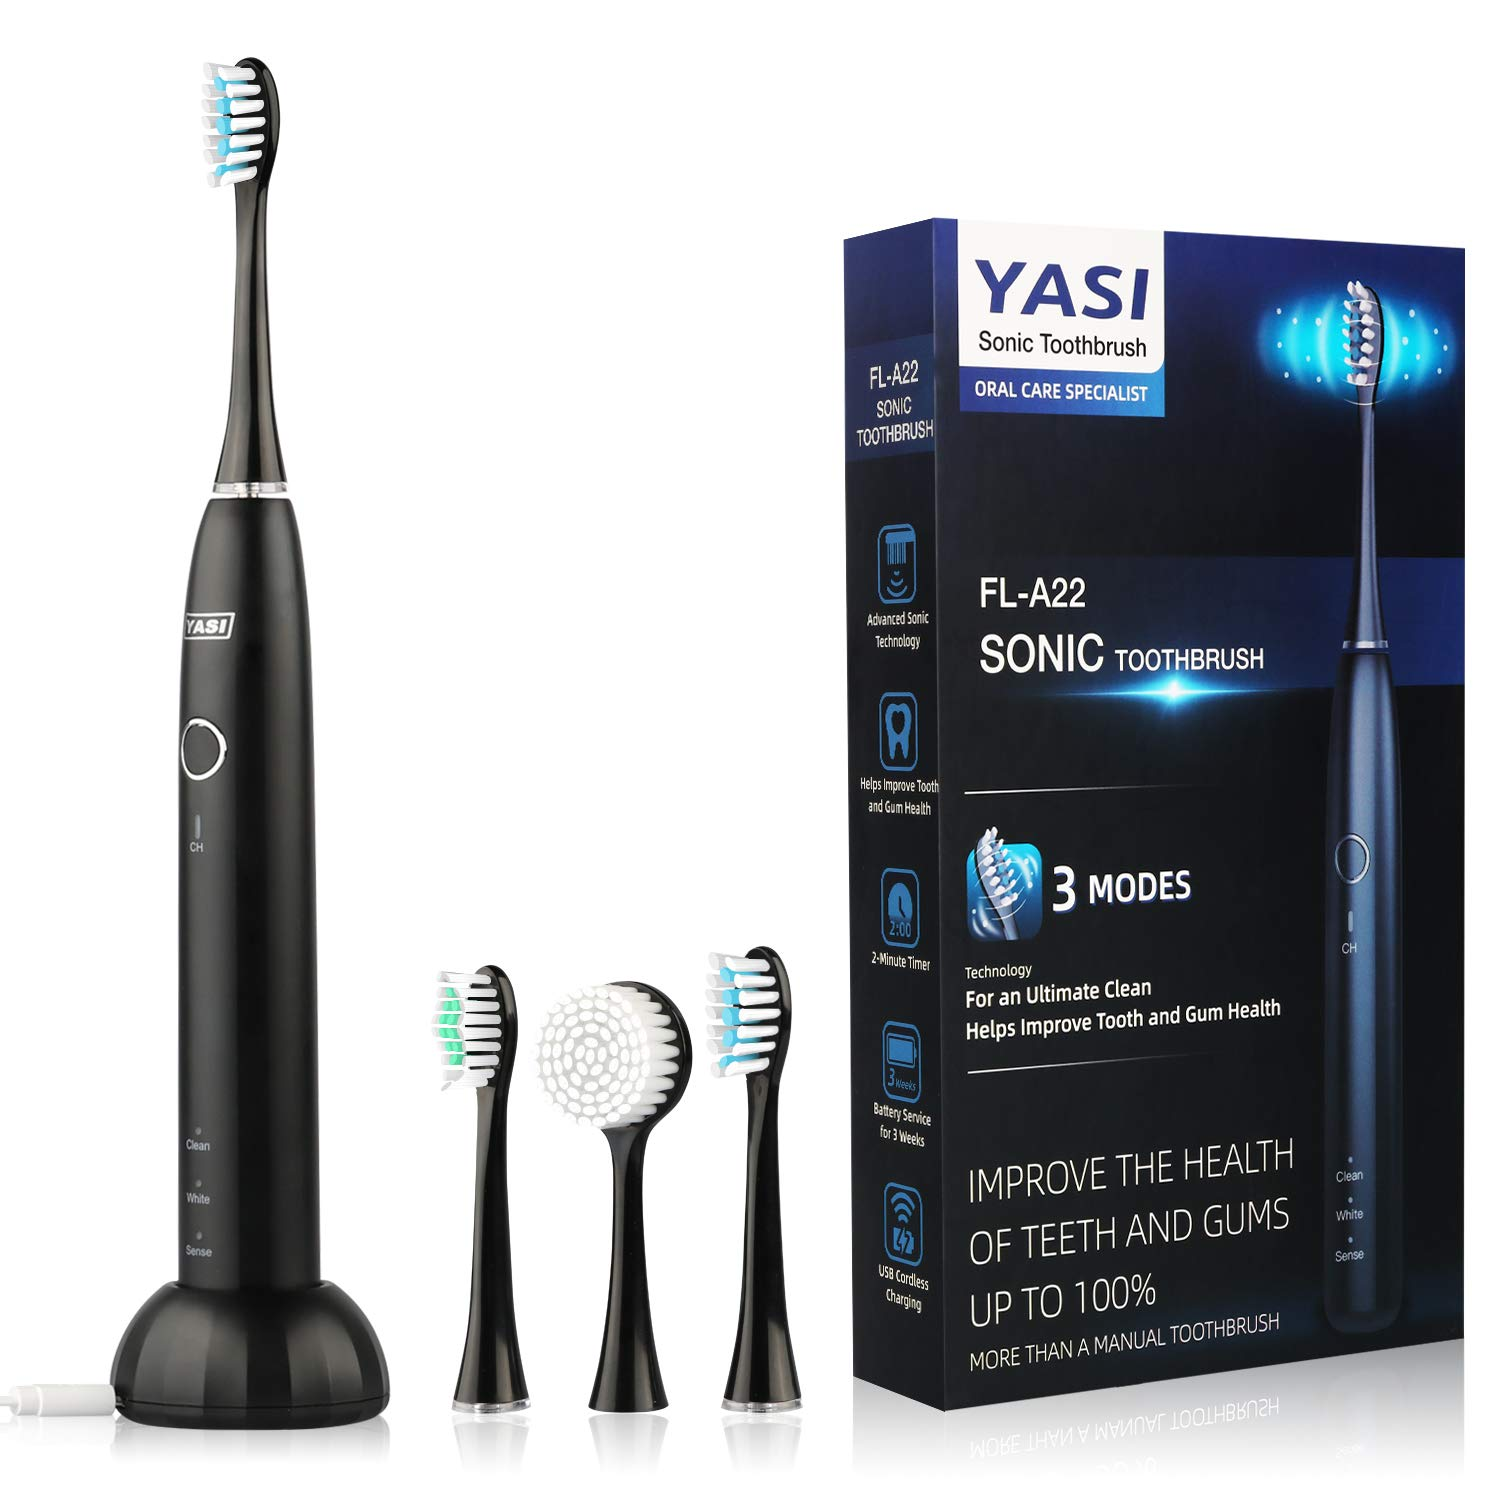 Sonic Electric Toothbrush 50,000 VPM Whitening Toothbrush Rechargeable With 2 Brush Heads,1 acial Cleansing Brush,Wireless Charging Adult Waterproof Ultrasonic Toothbrush with 3 Modes Smart Timer